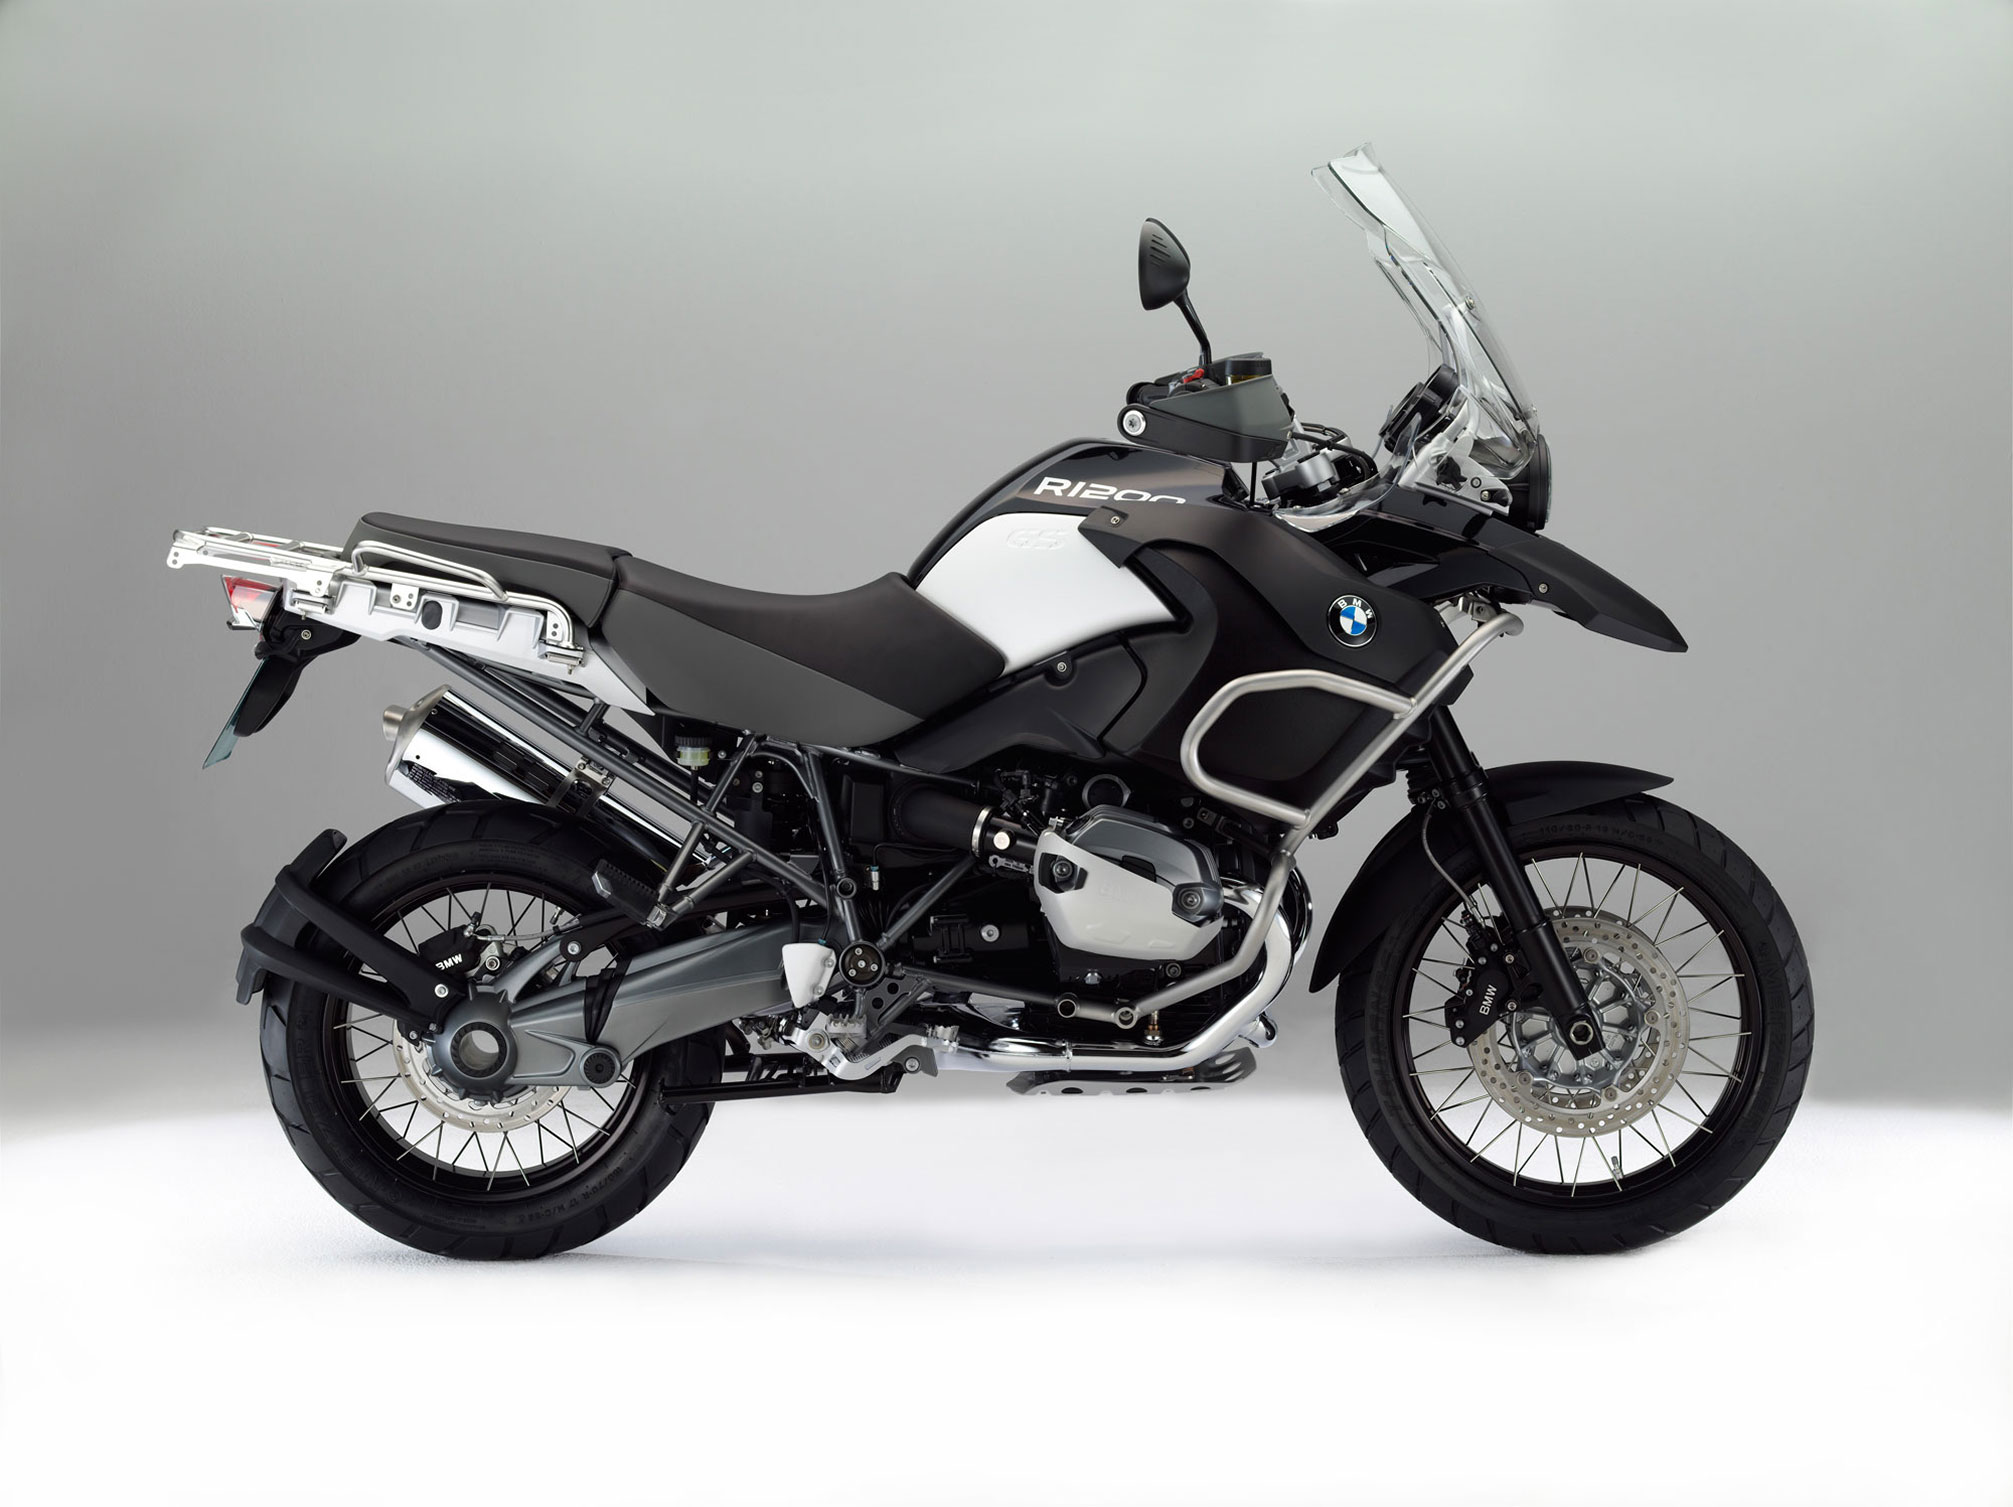 BMW R1200GS Adventure Triple Black 2013 images #8618